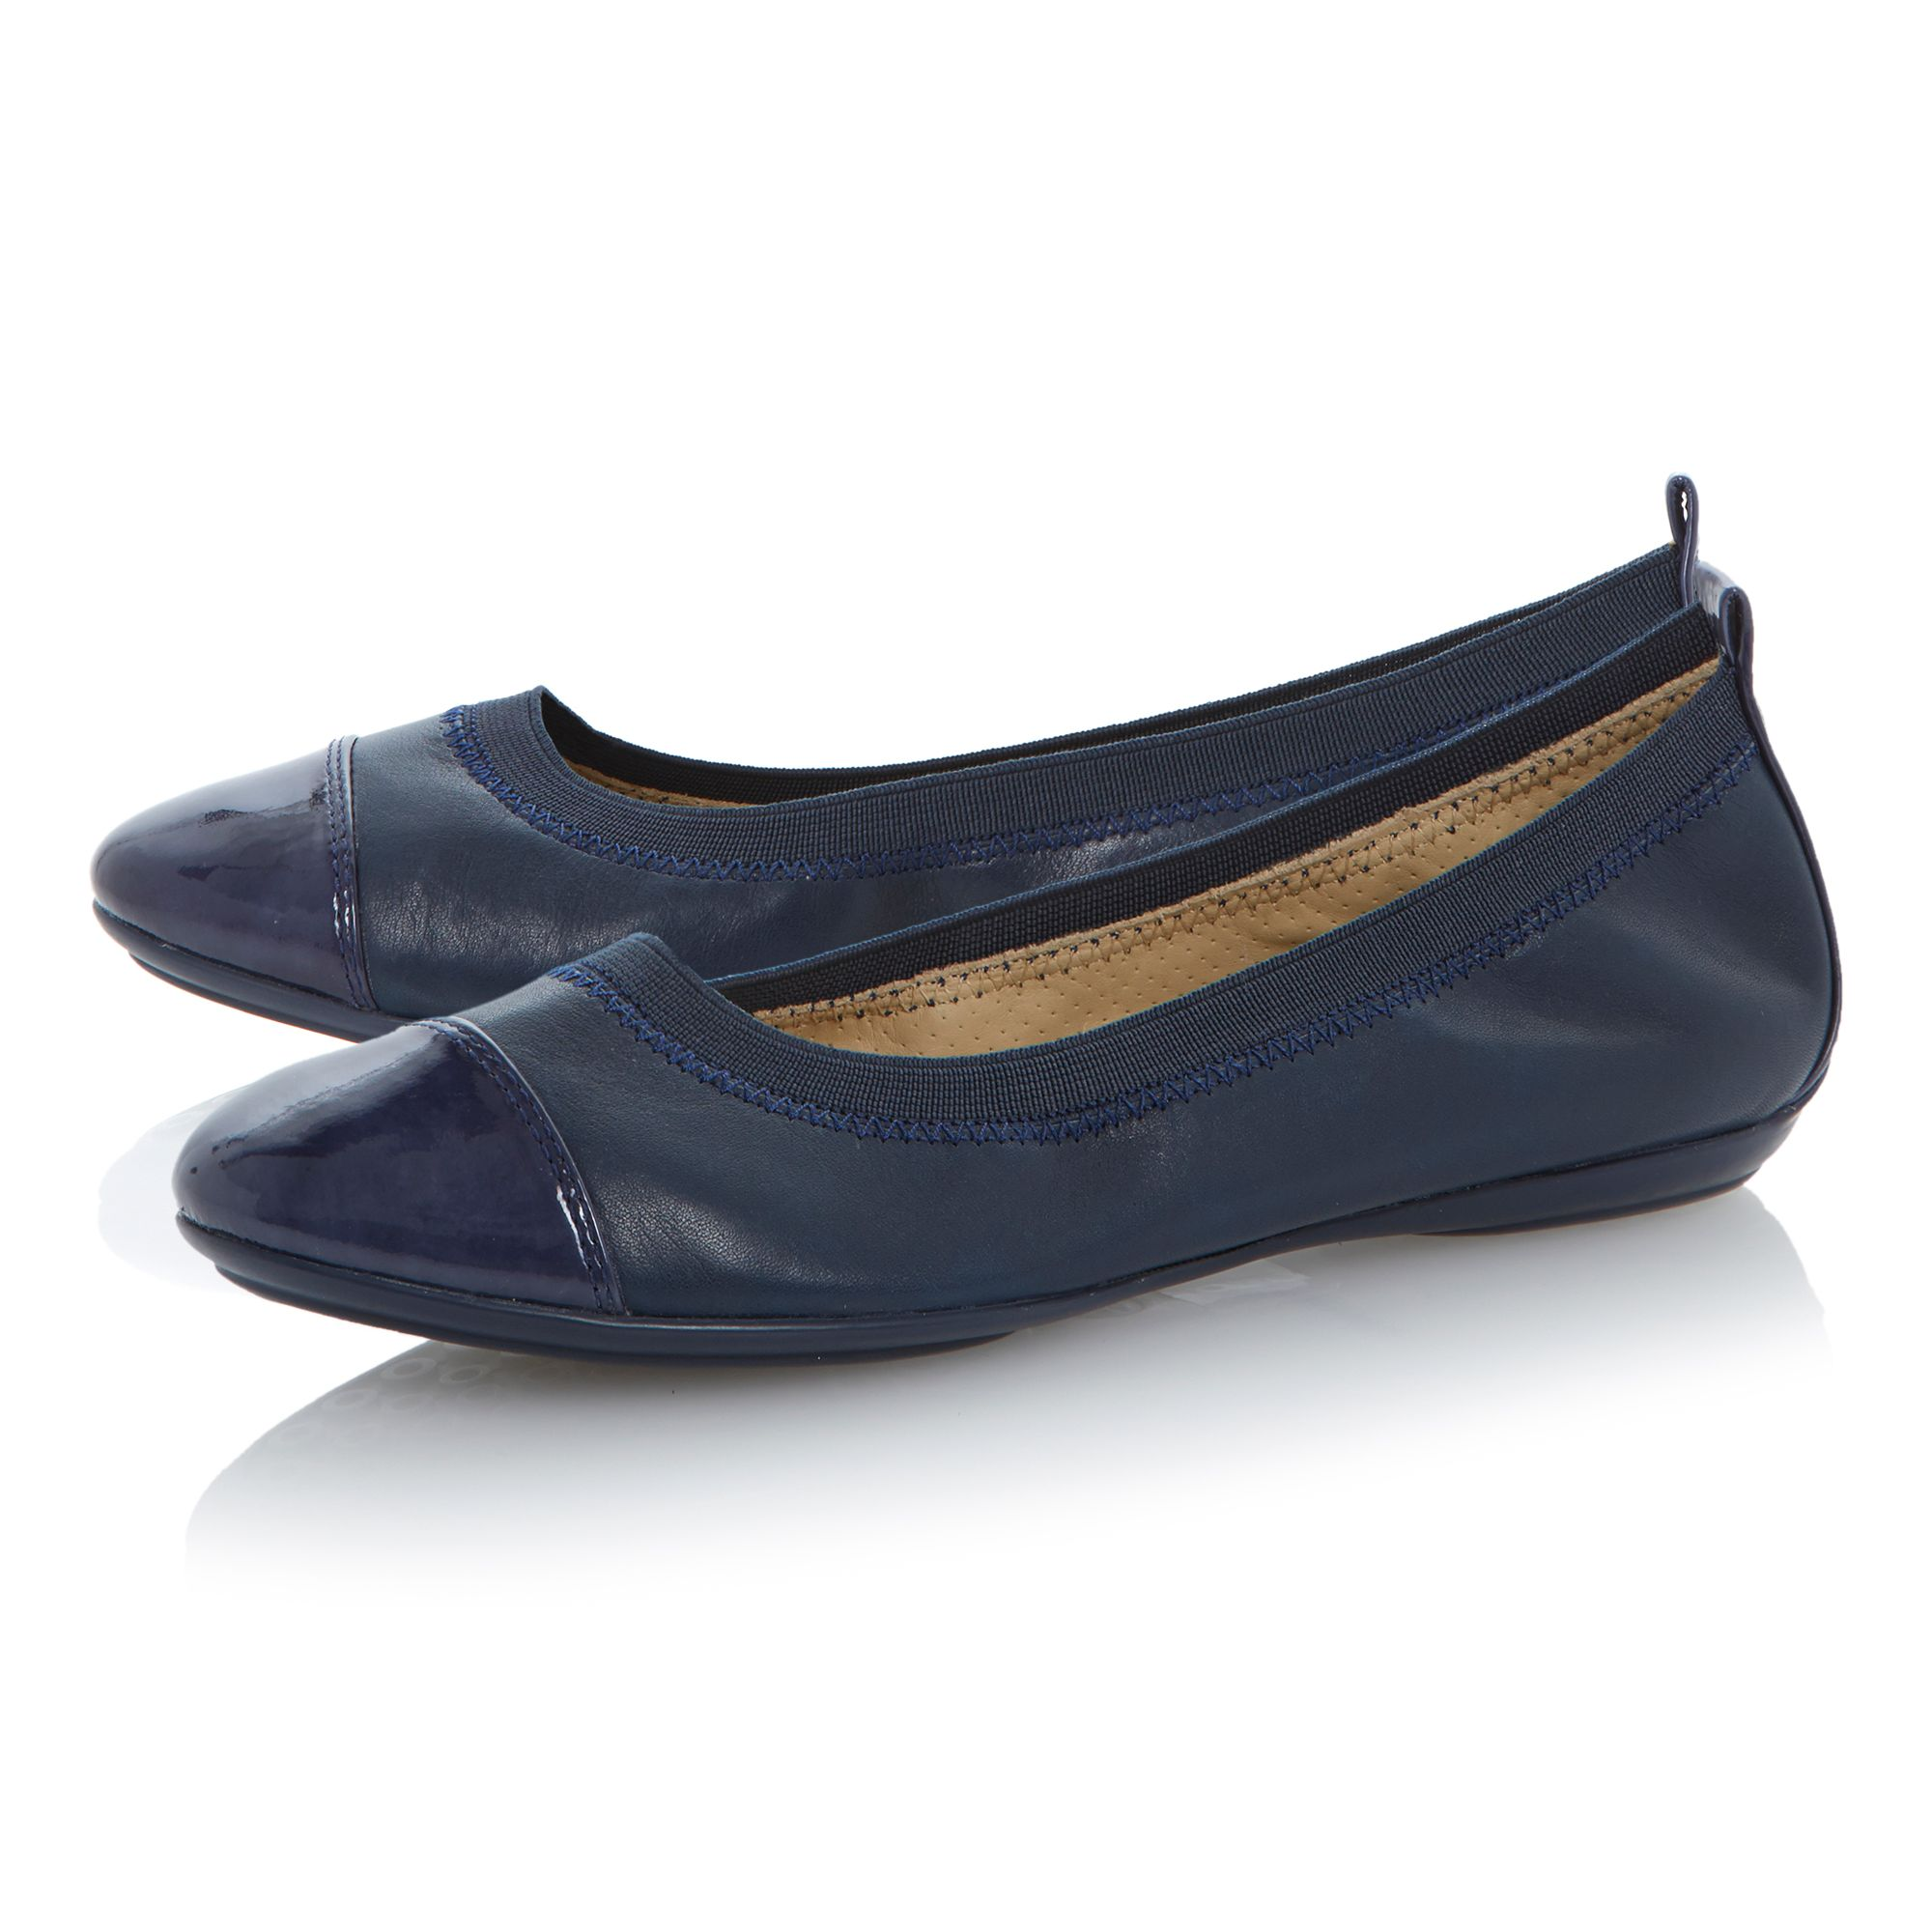 Charlene leather flat round toe ballerina shoes